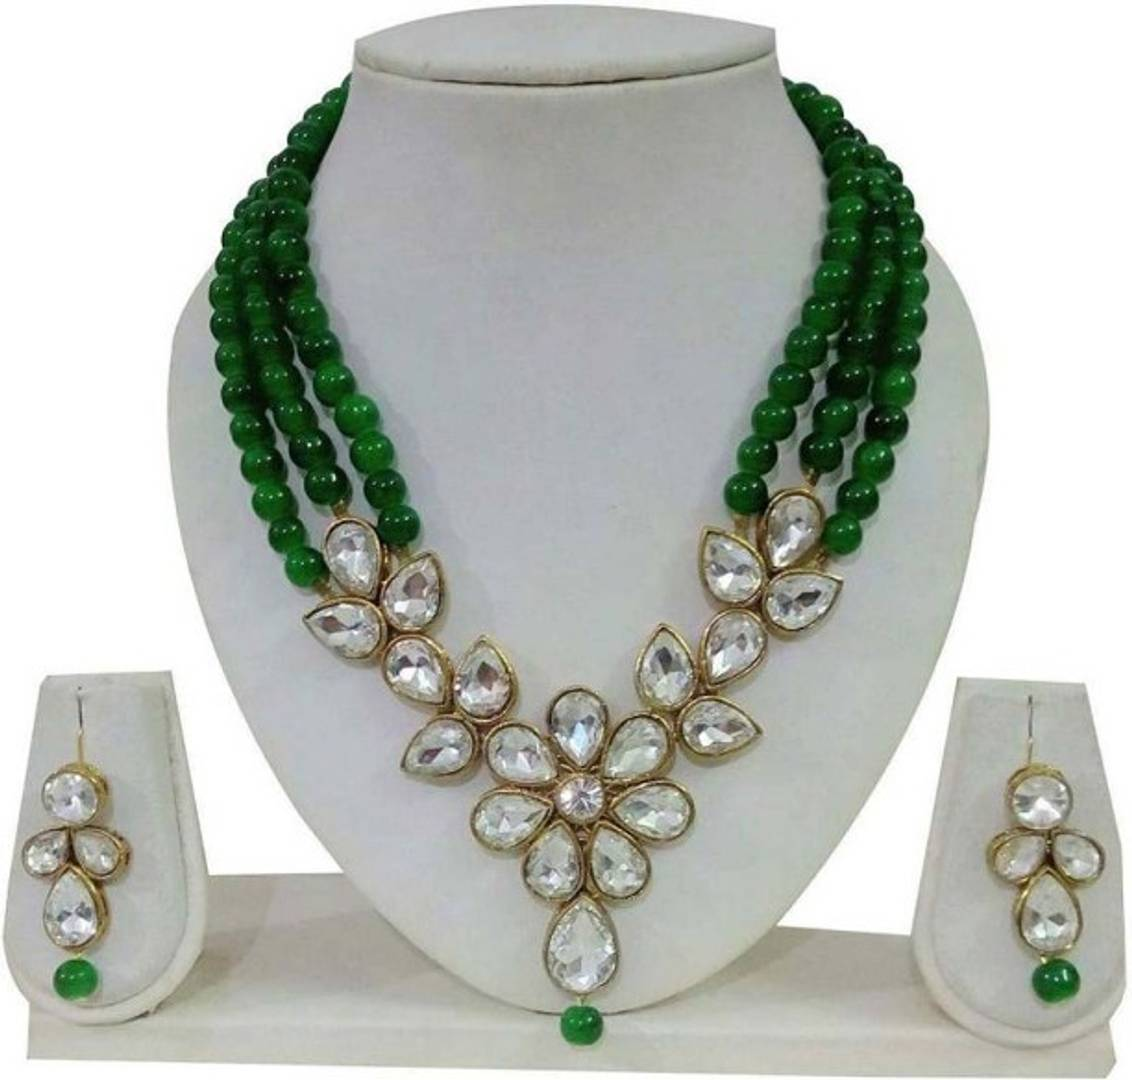 Antique Crystal Kundan Beaded Necklace Jewellery Set For Women's